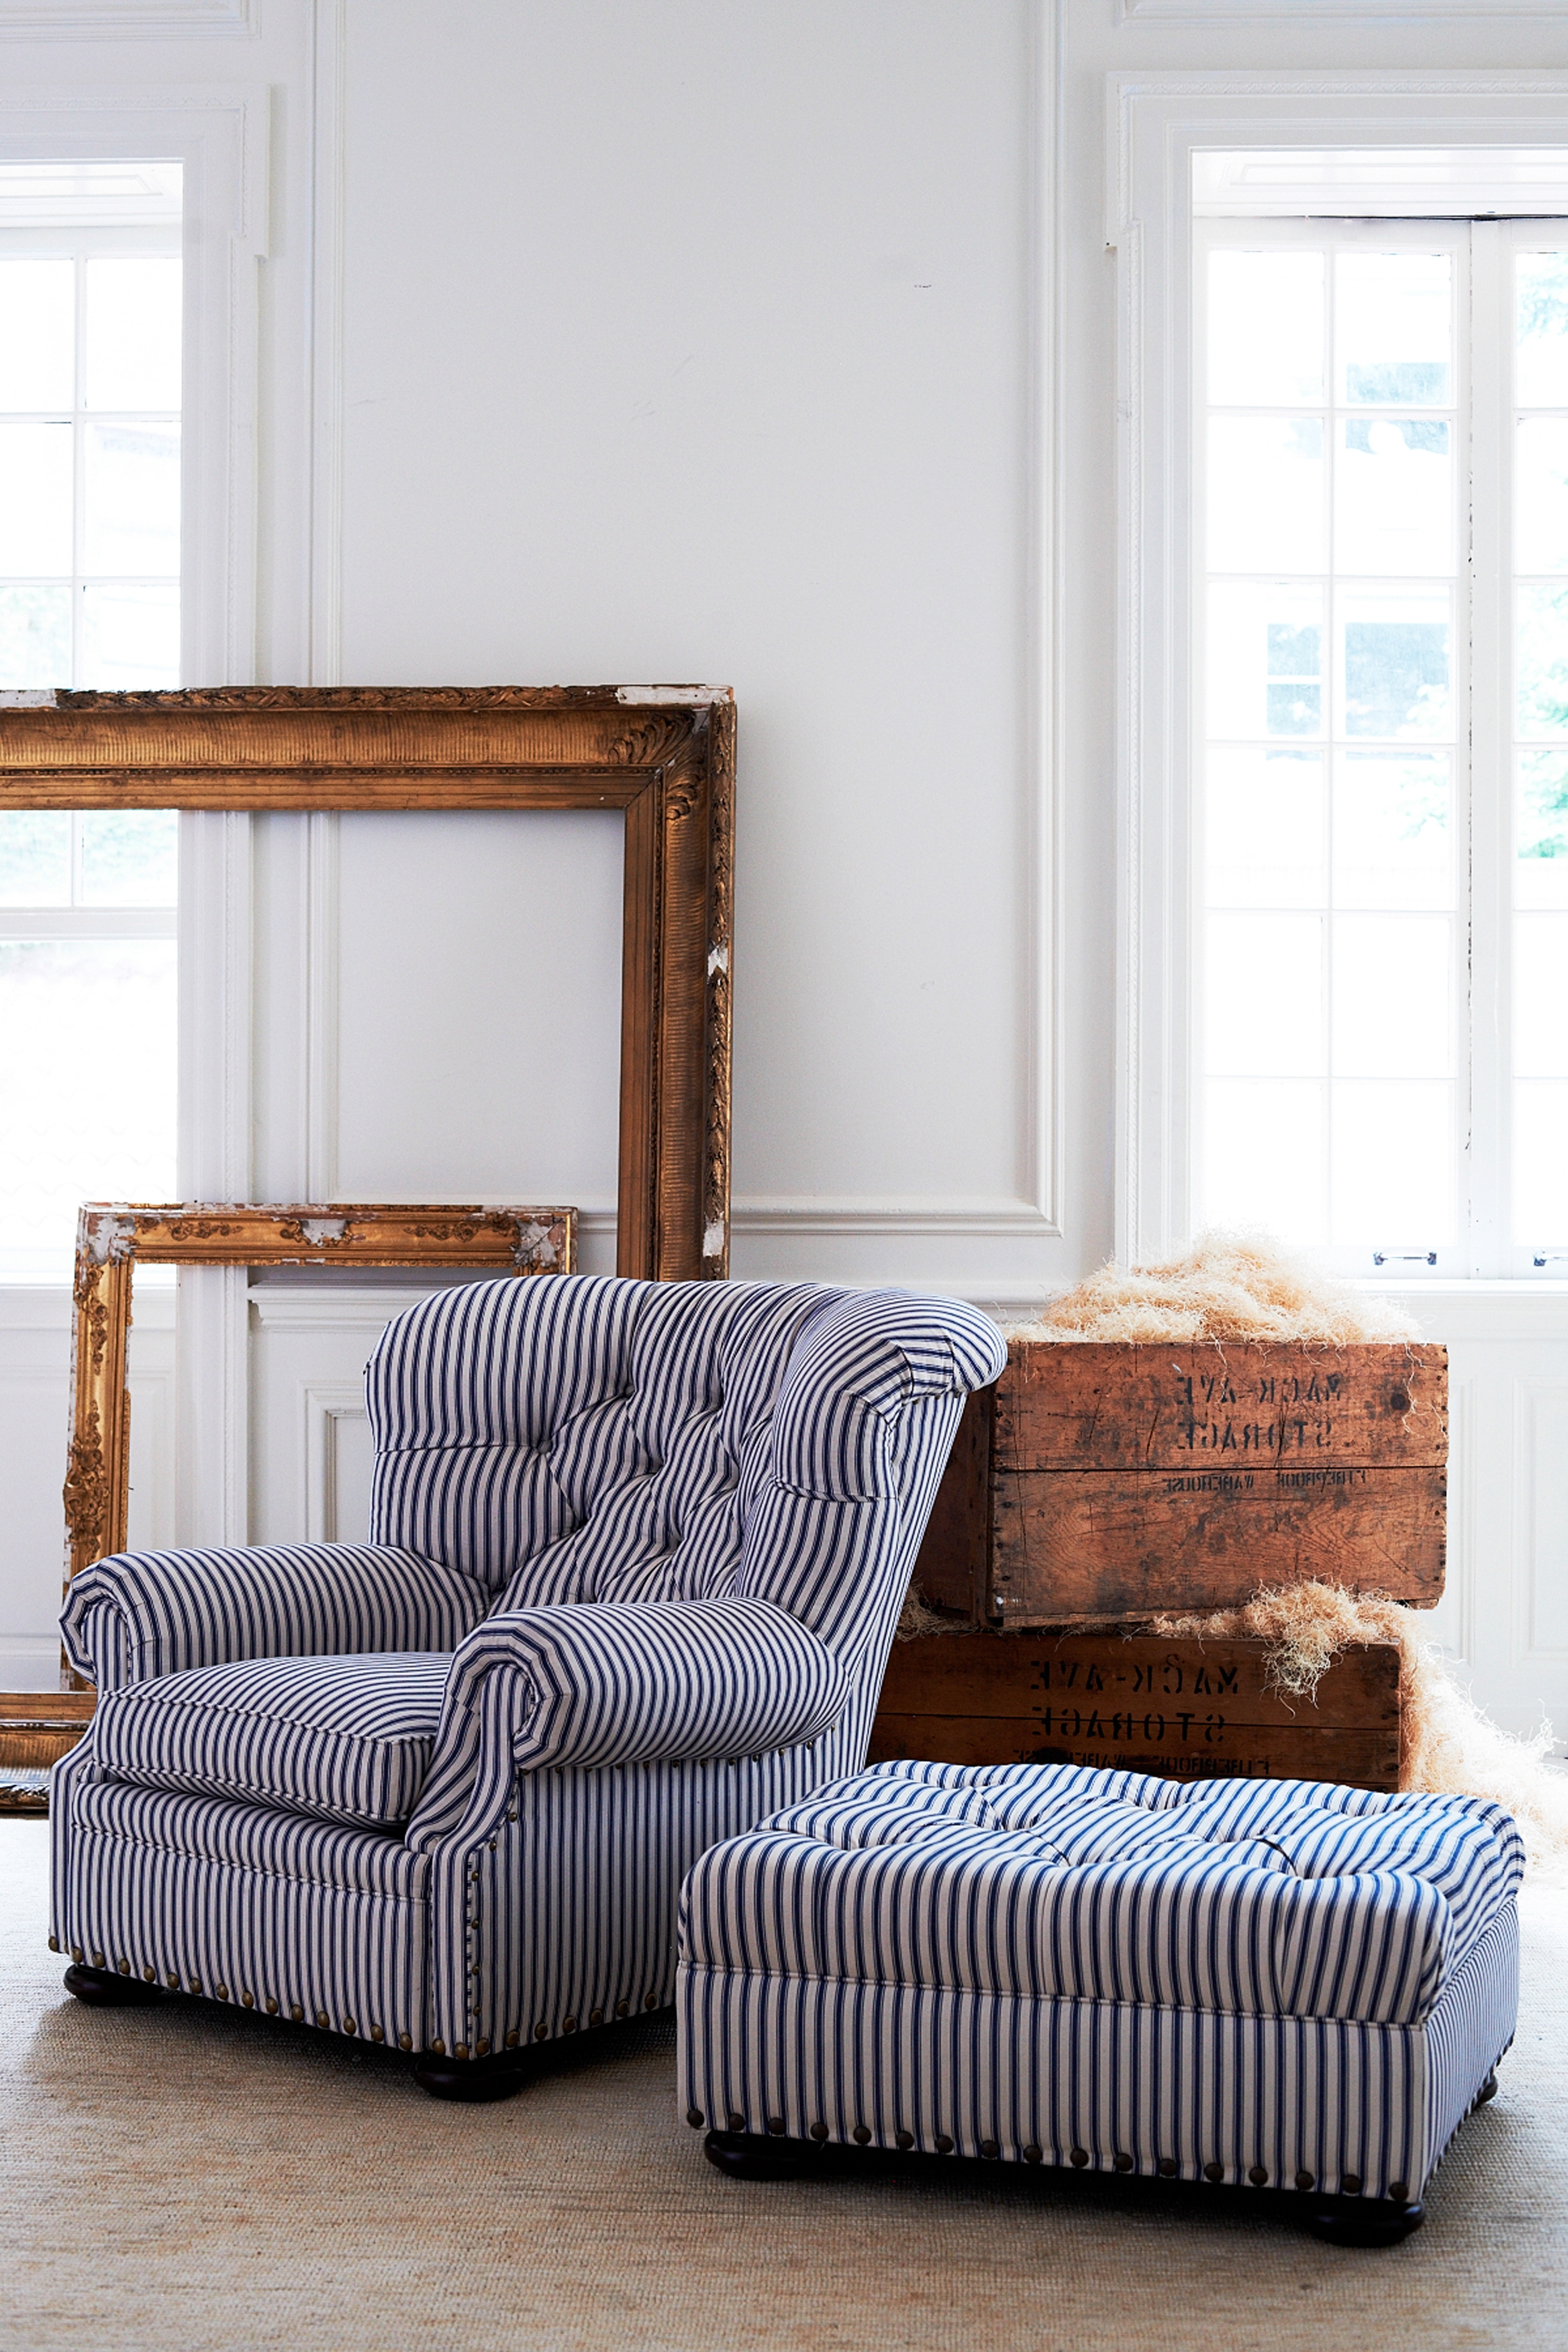 Striped Sofas And Chairs Pertaining To Well Known Ralph Lauren Home's Tufted Writer's Chair And Ottoman Reimagined (View 8 of 15)